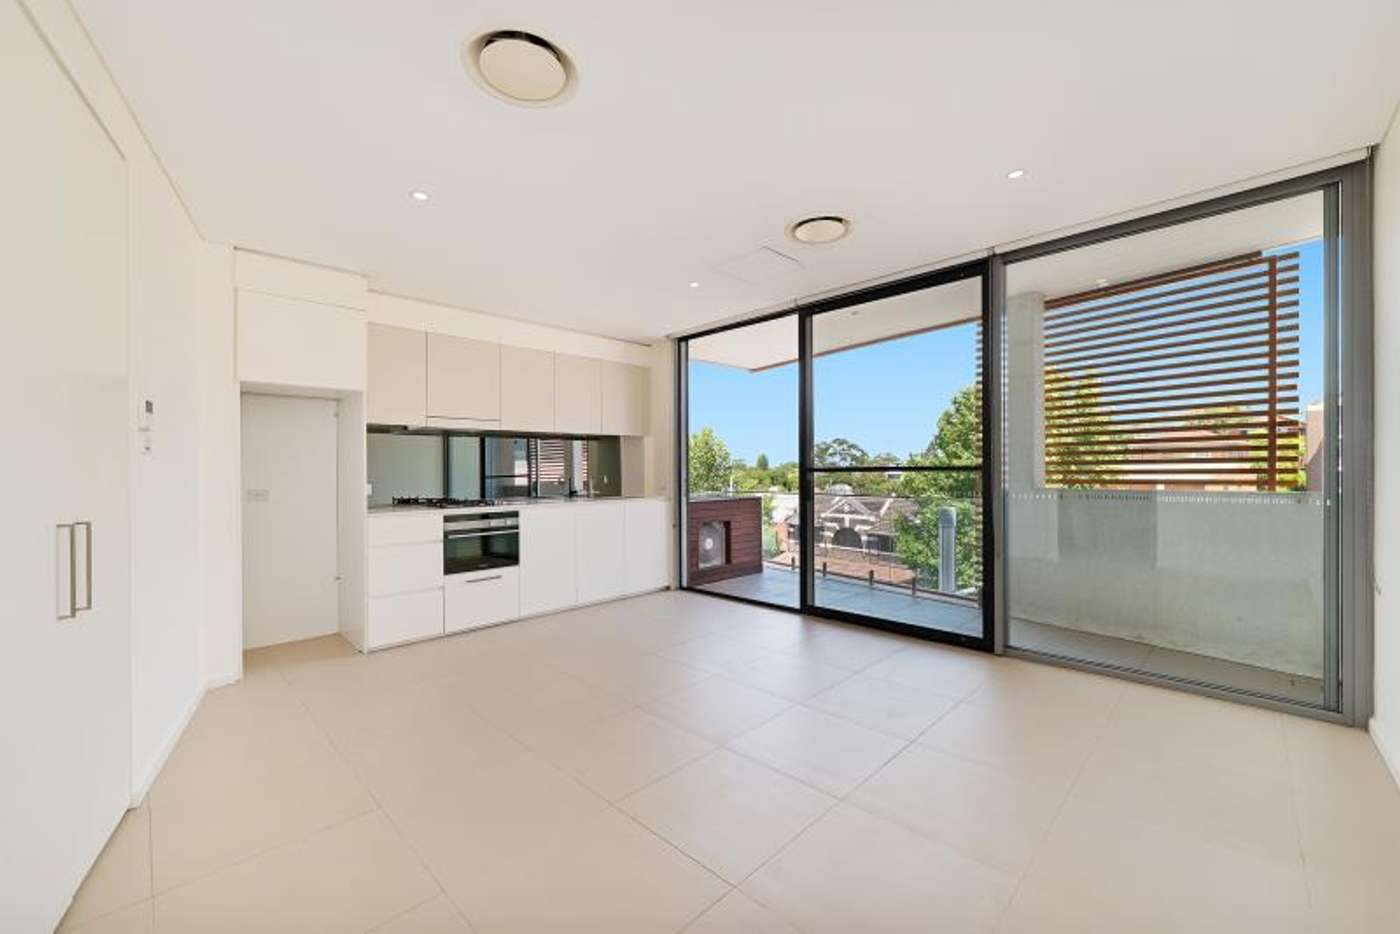 Main view of Homely apartment listing, 301/9-15 Ascot Street, Kensington NSW 2033